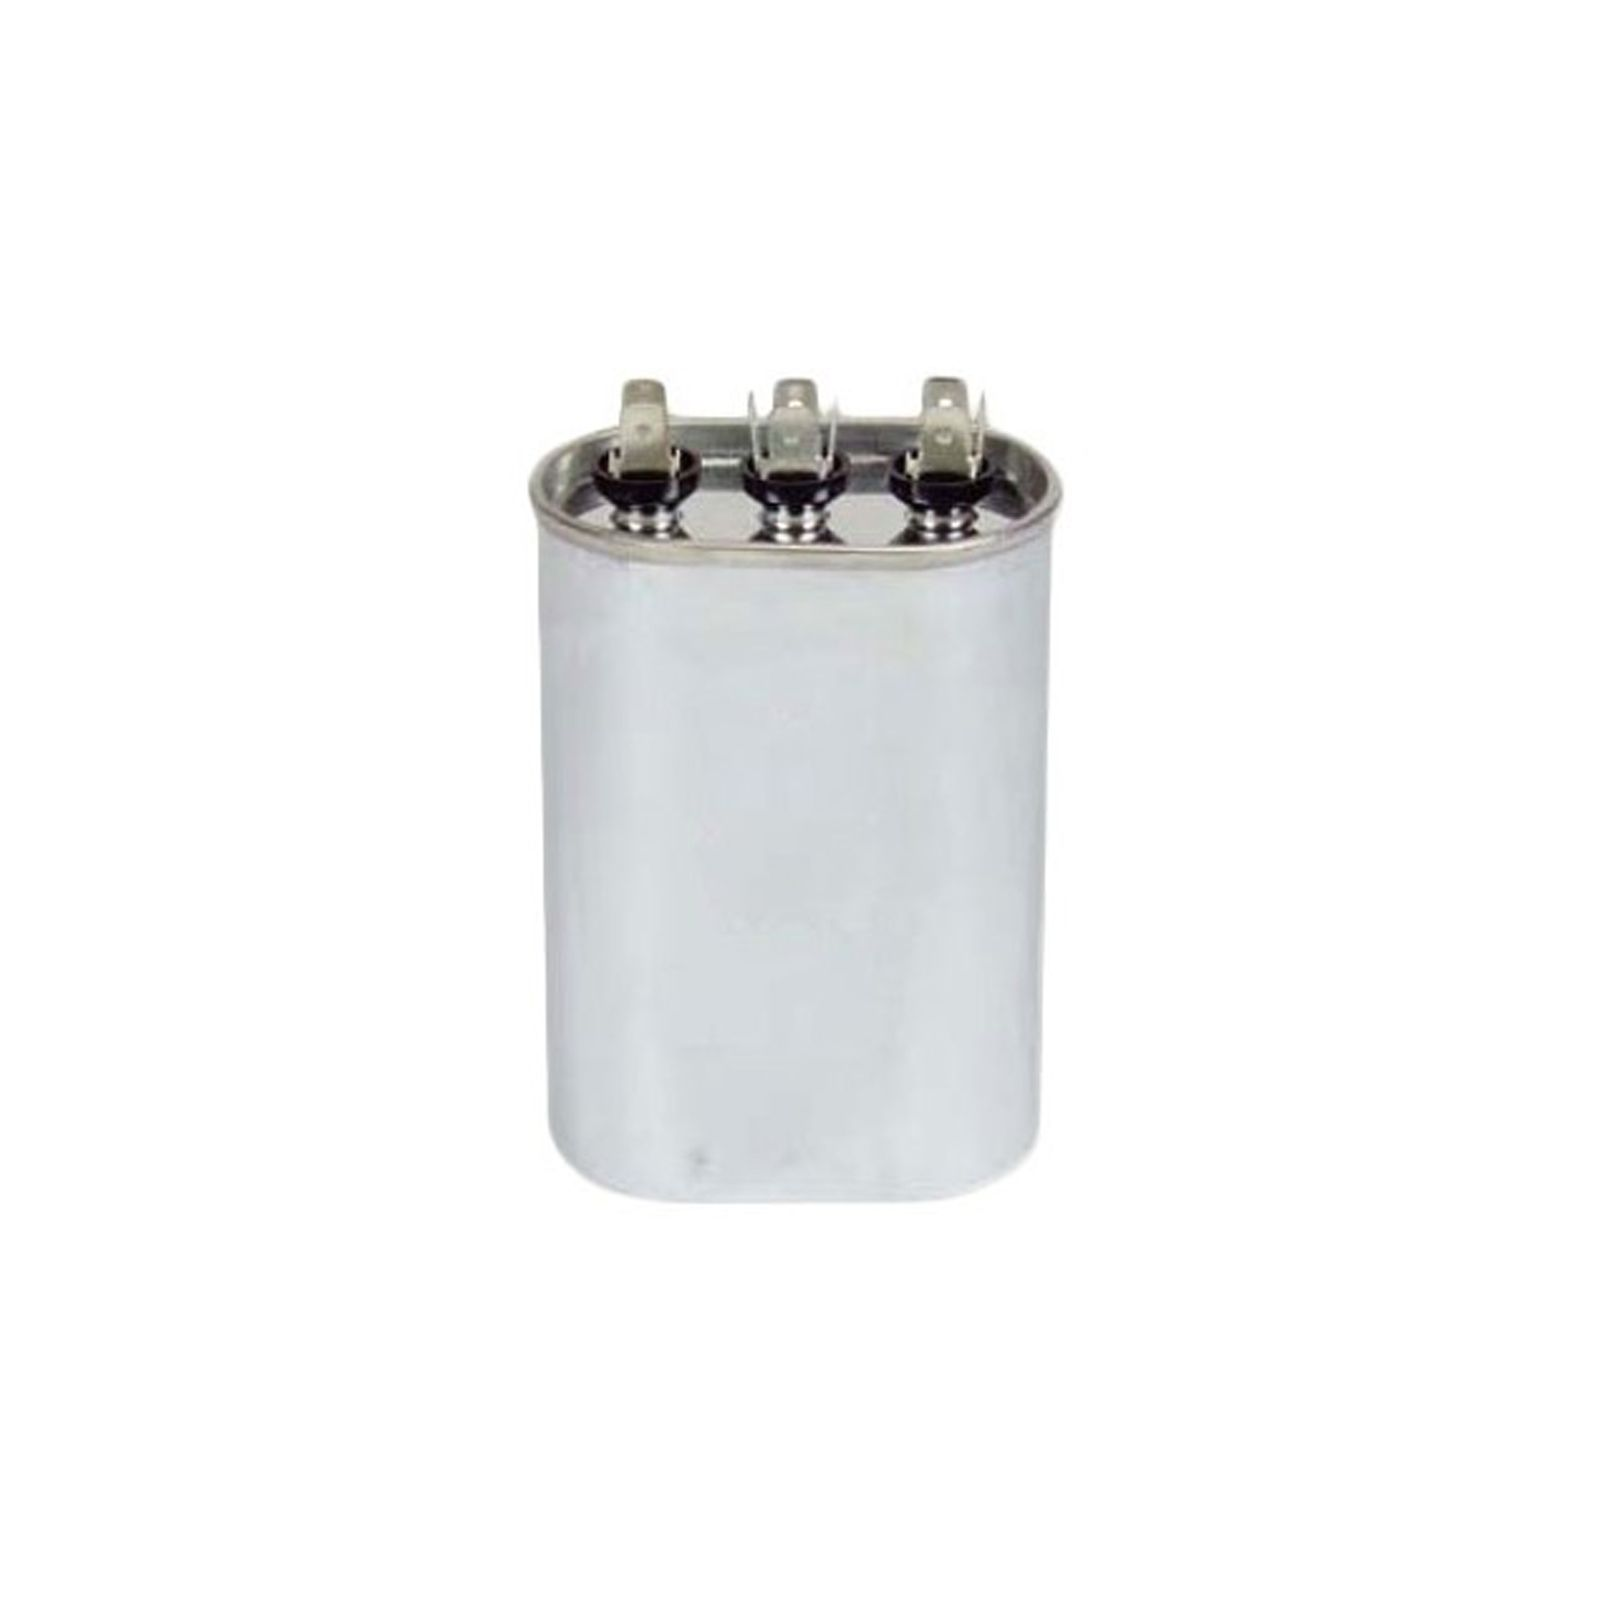 Rheem PROTECH 43-25135-25 - Capacitor - 45/3/440 Dual Oval